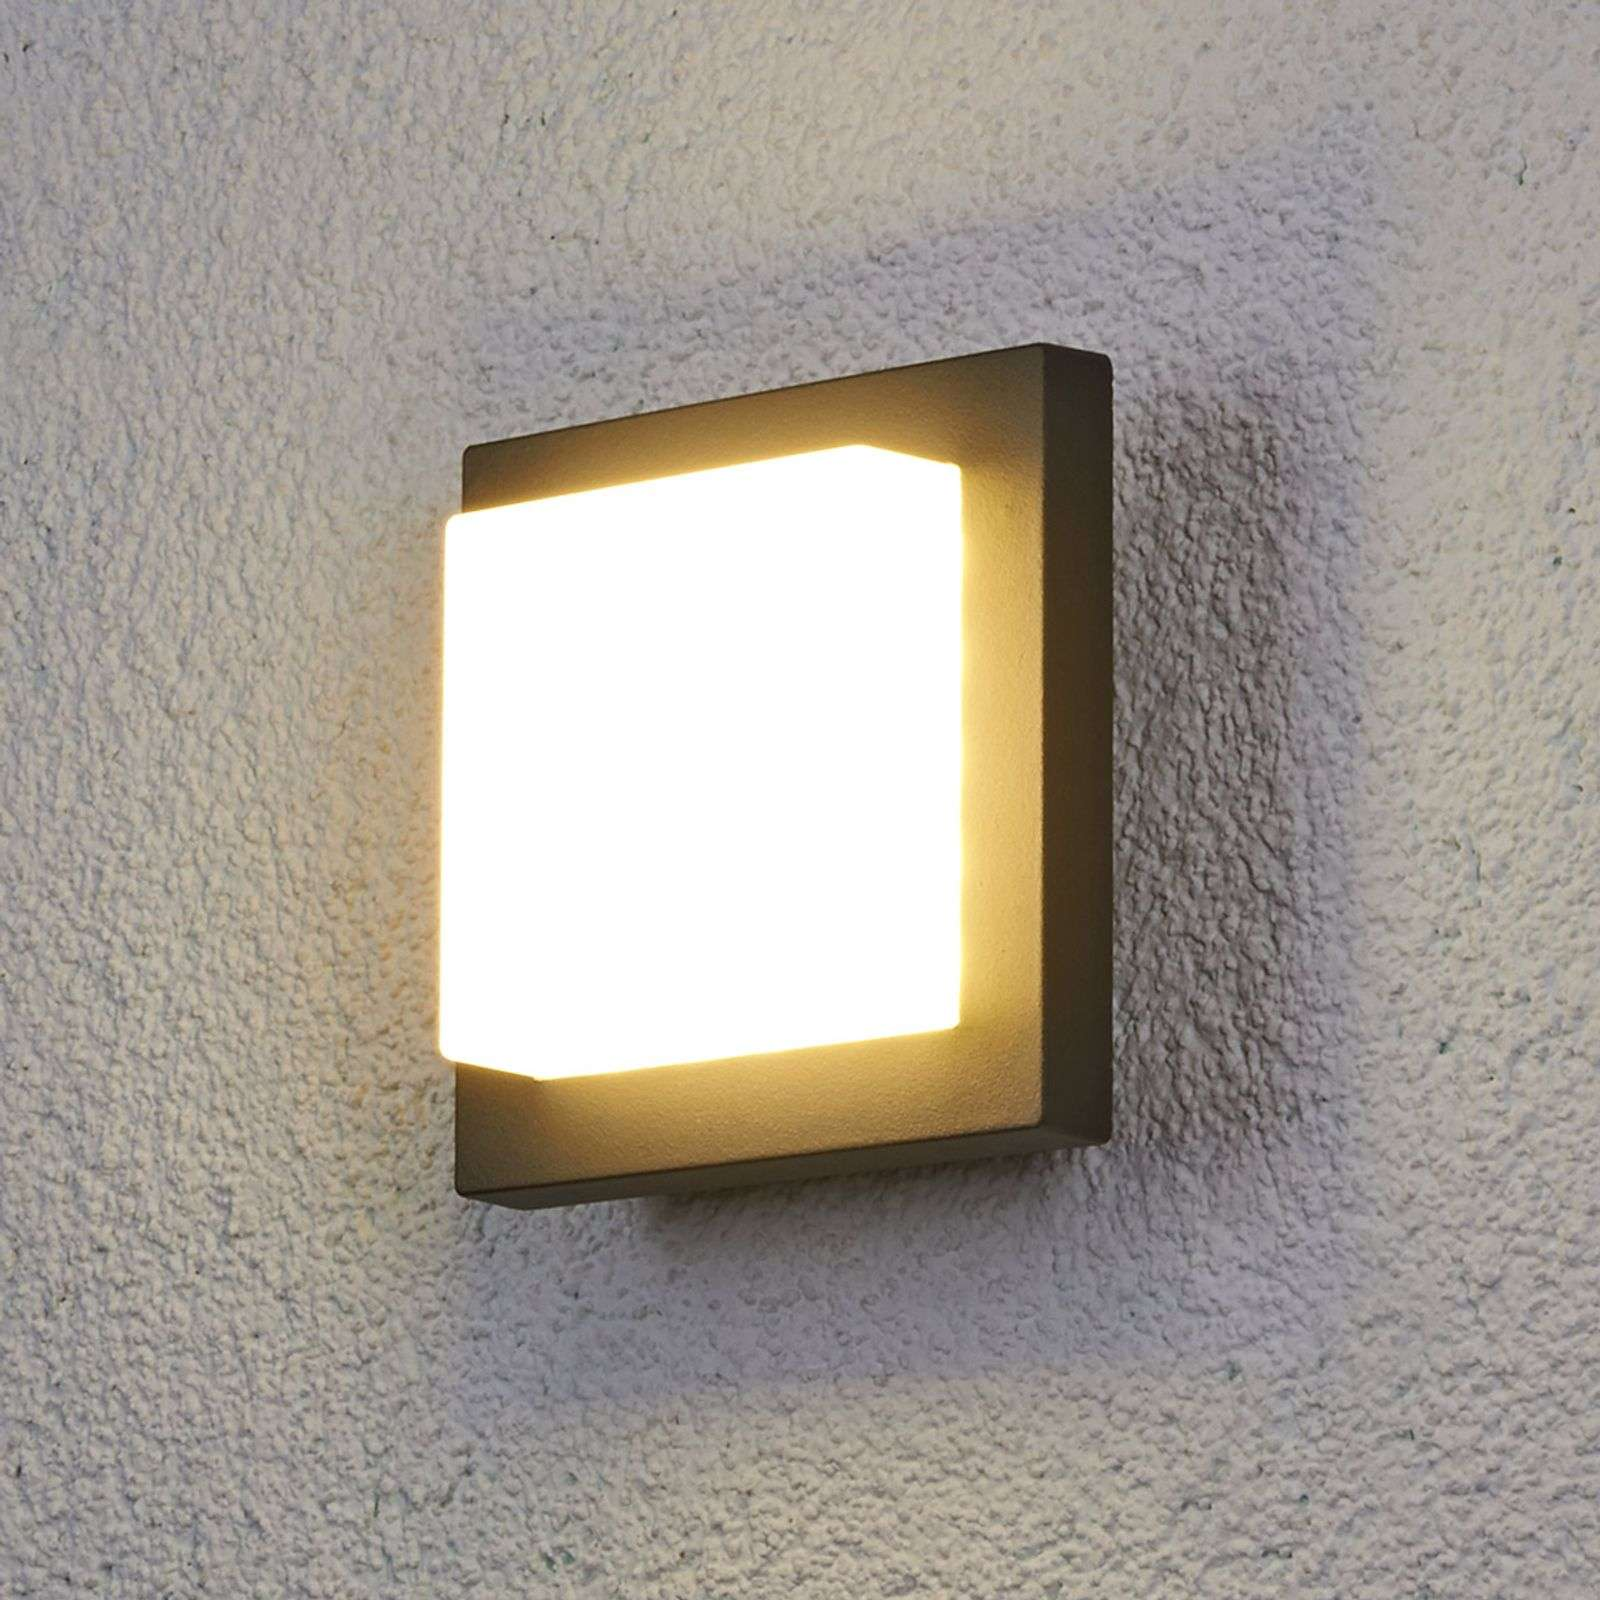 Applique d'extérieur LED Celeste au design simple